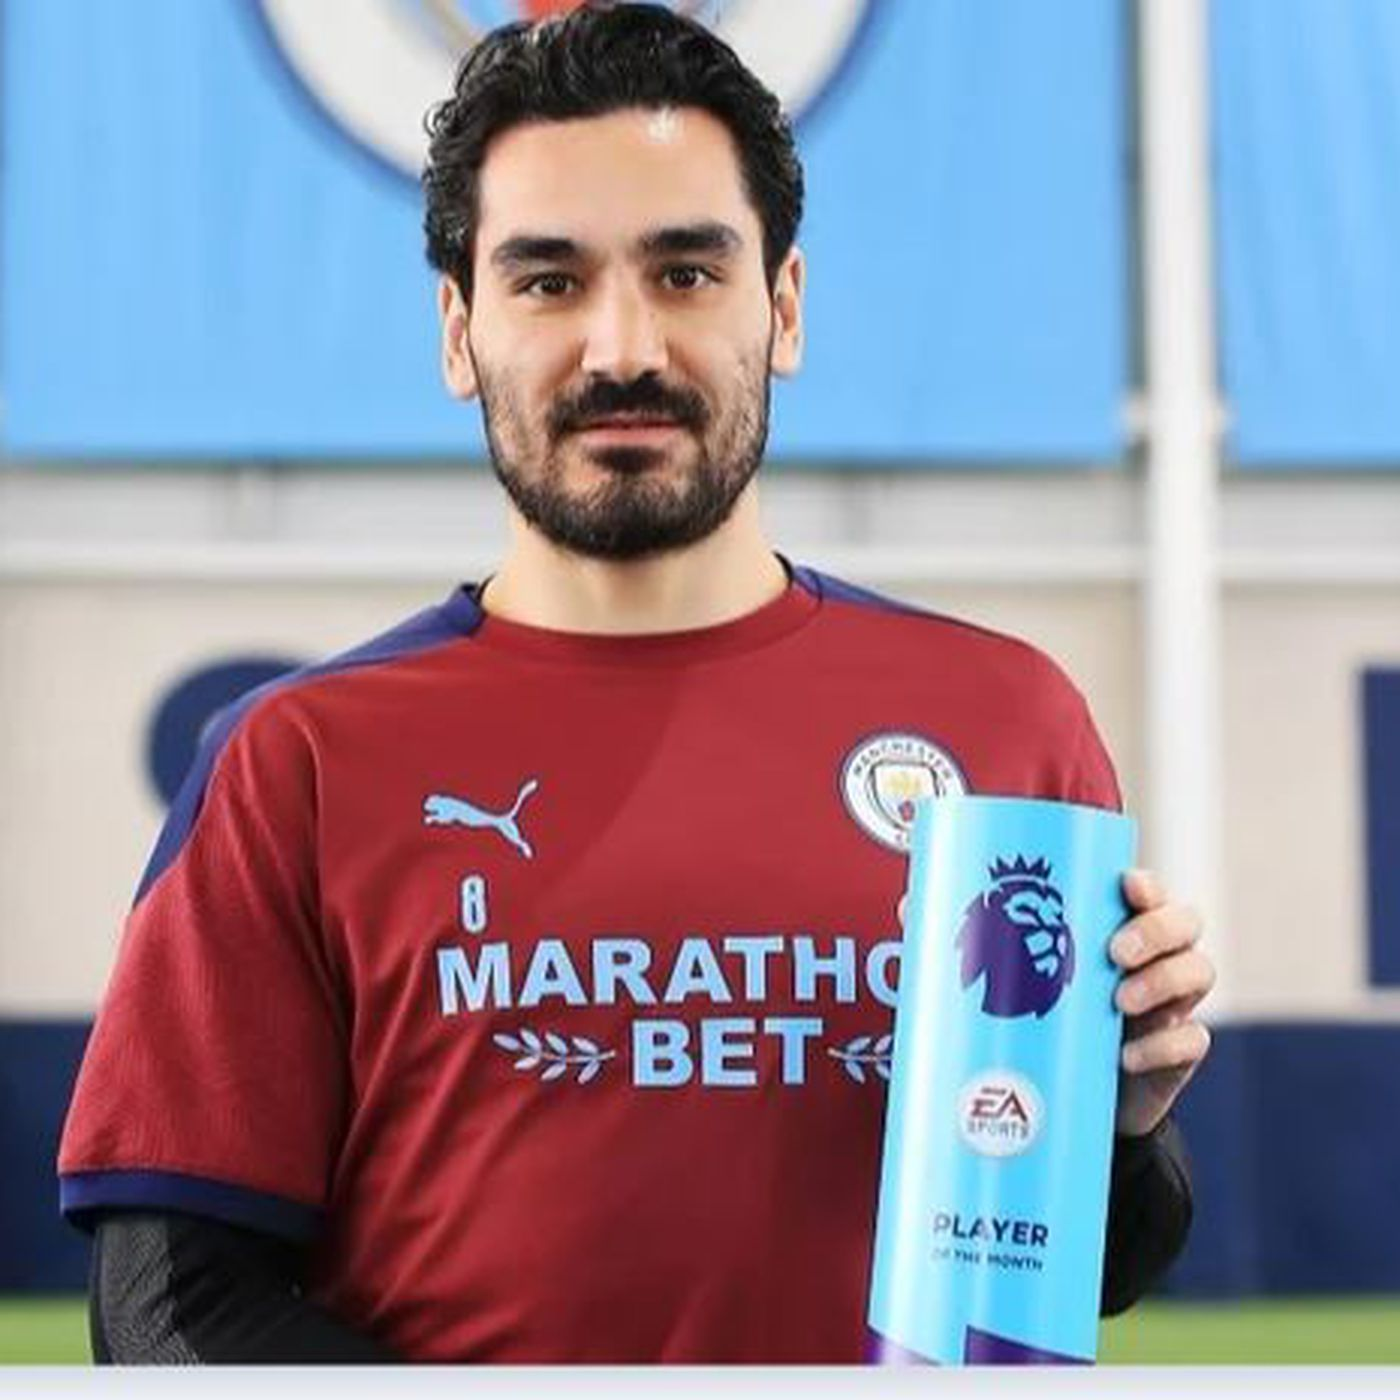 Ilkay Gundogan Wins Second Player of the Month Award - Bitter and Blue